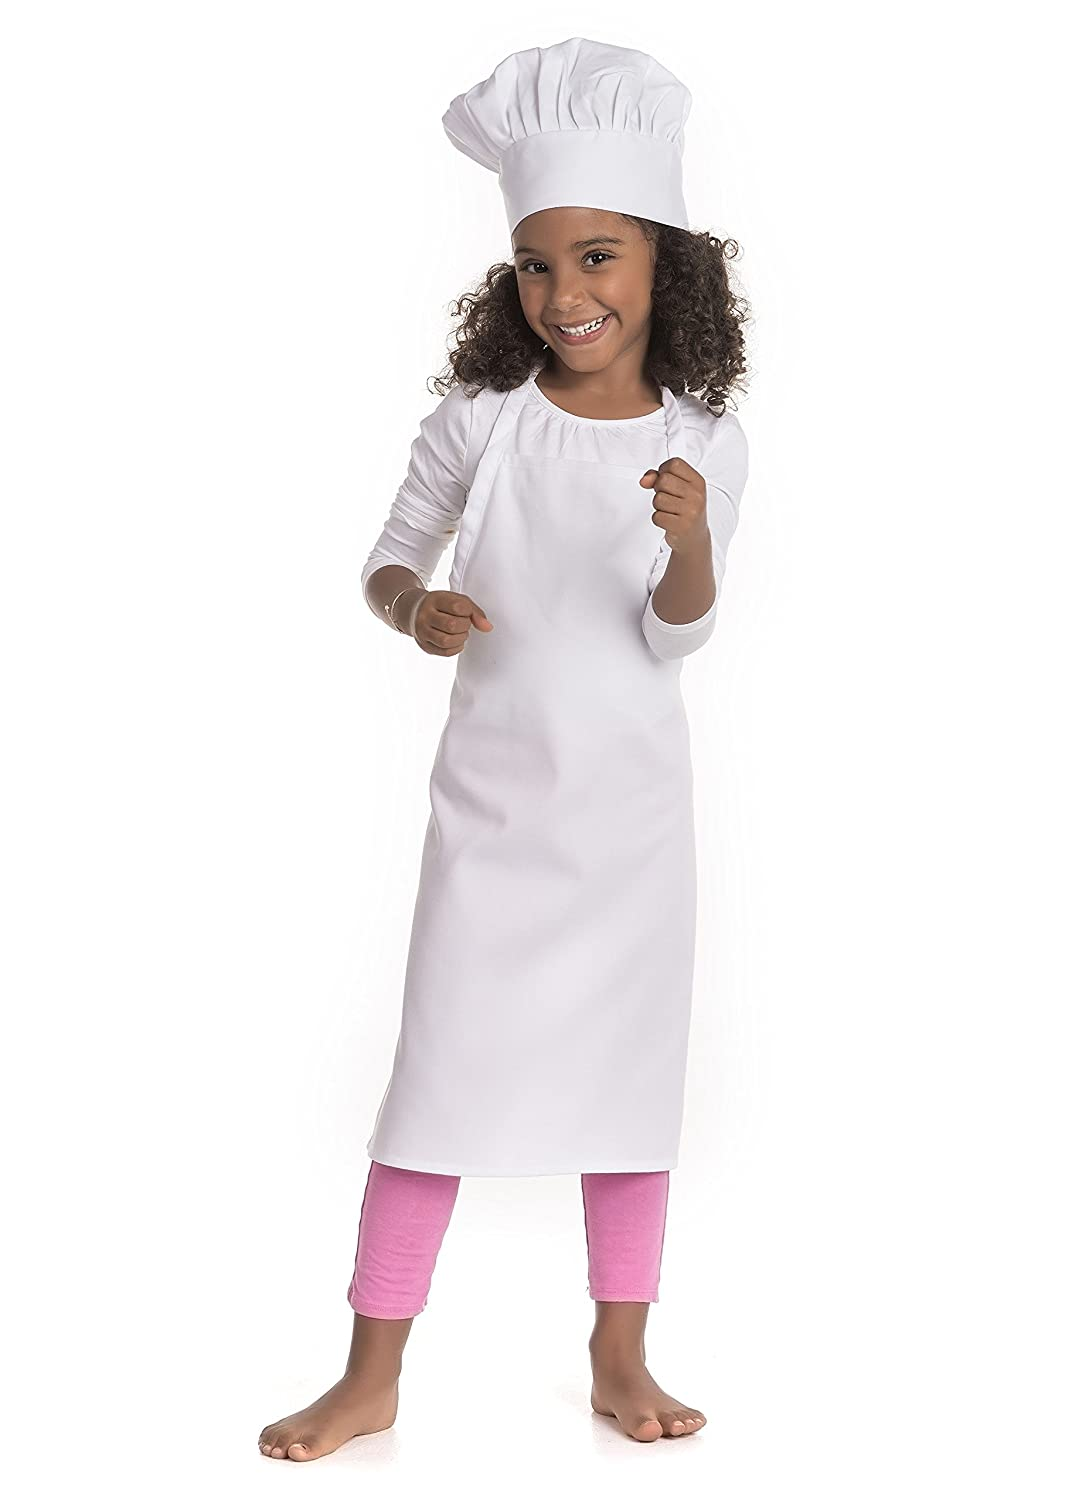 Kidcostumes Chef Set Apron and Hat Youth White